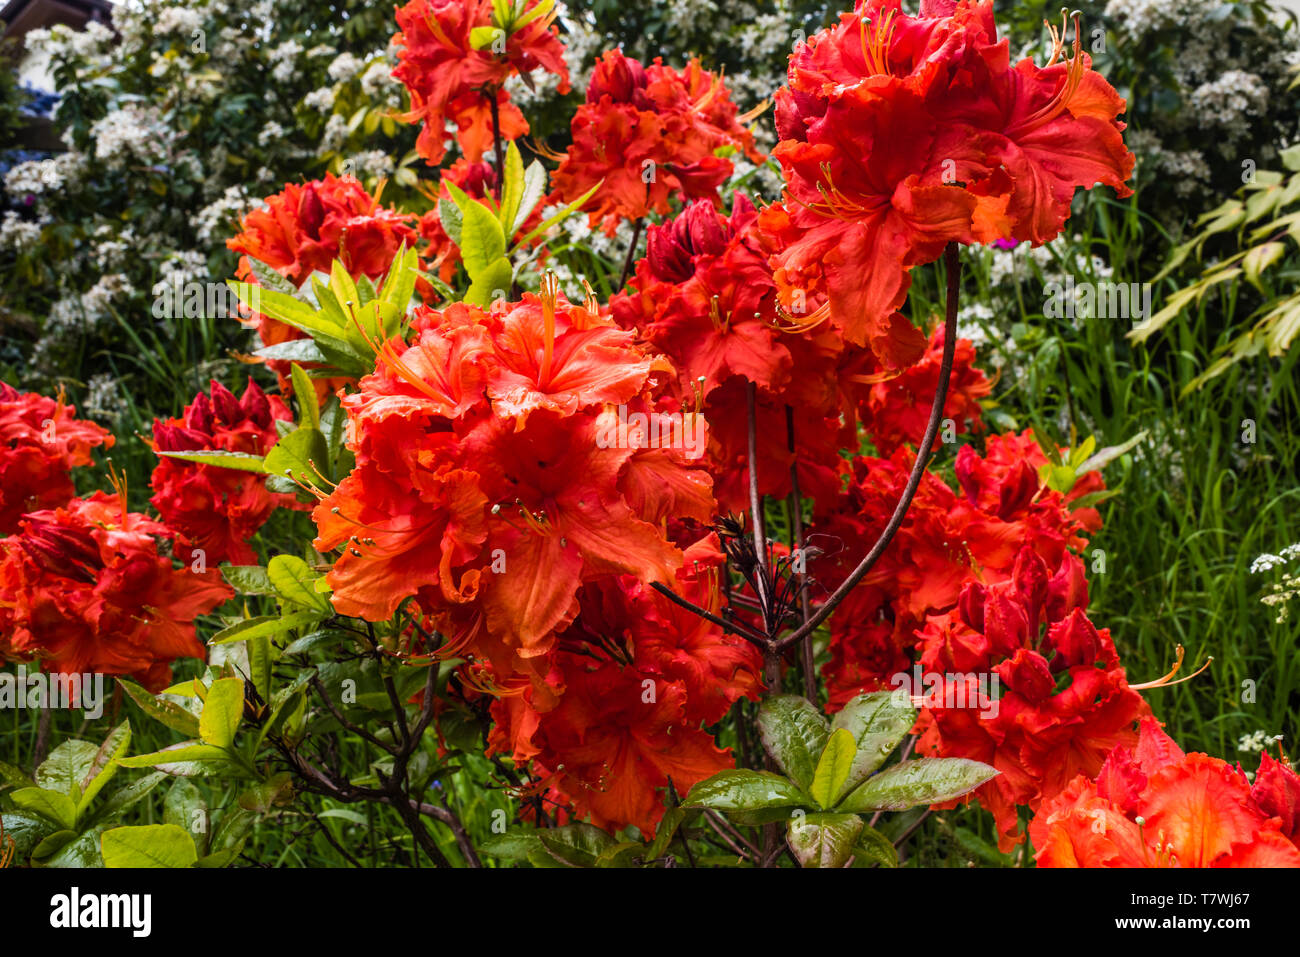 Azalea Gibraltar. A glorious display of flowers in May. - Stock Image